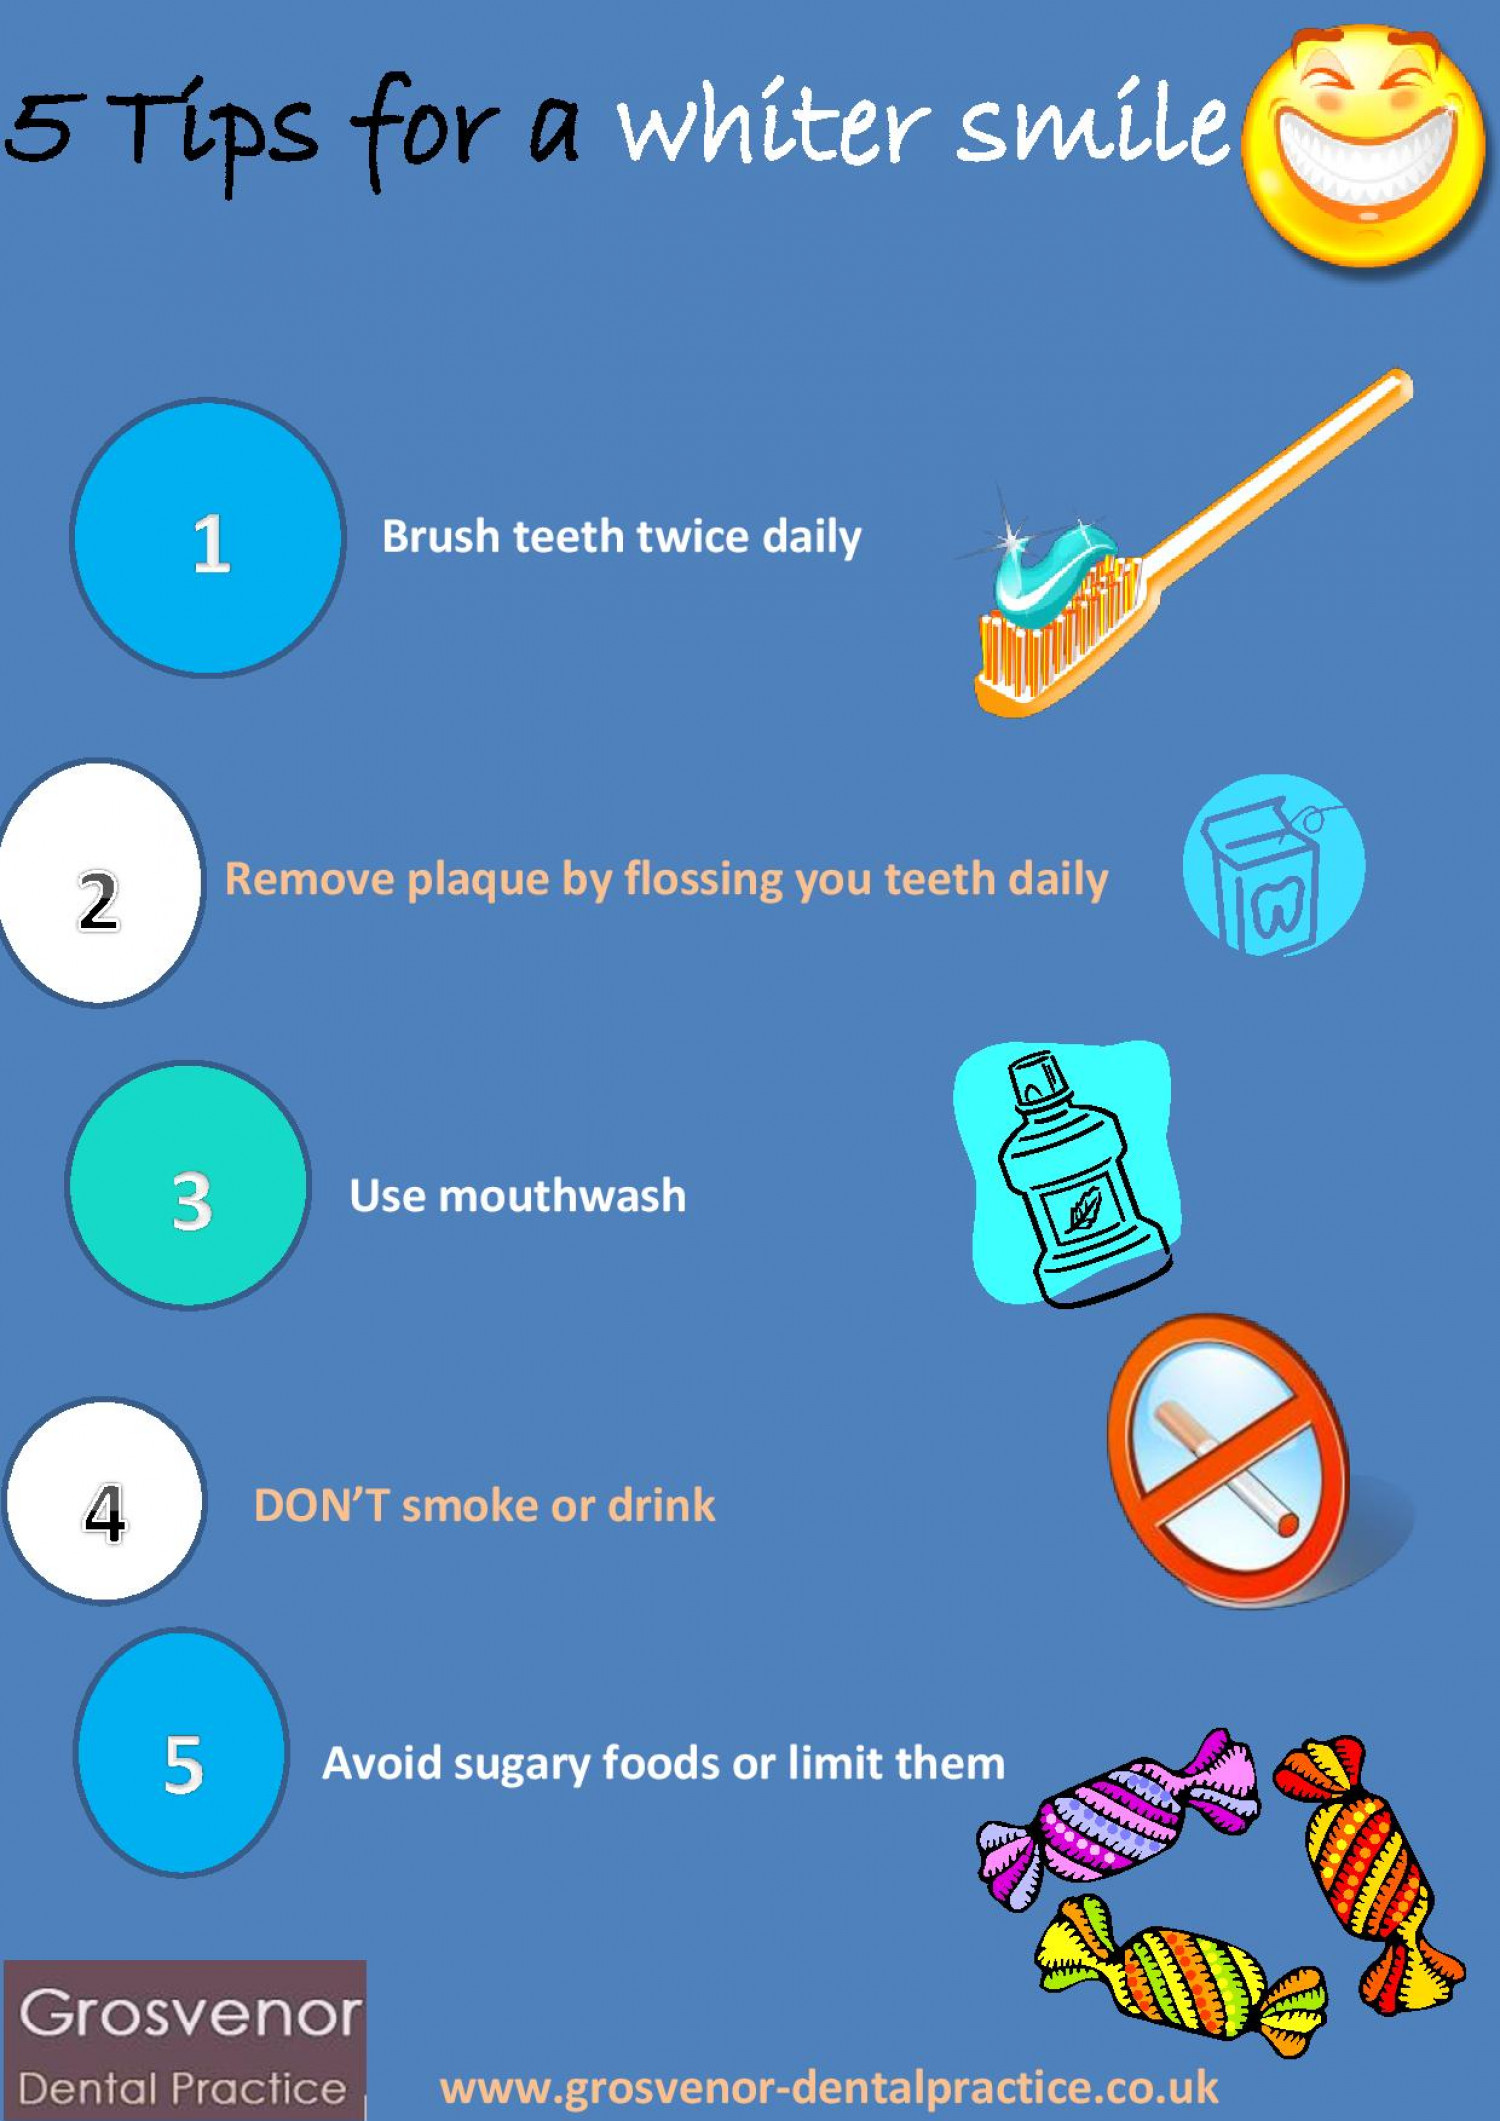 5 Tips For a Whiter Smile Infographic